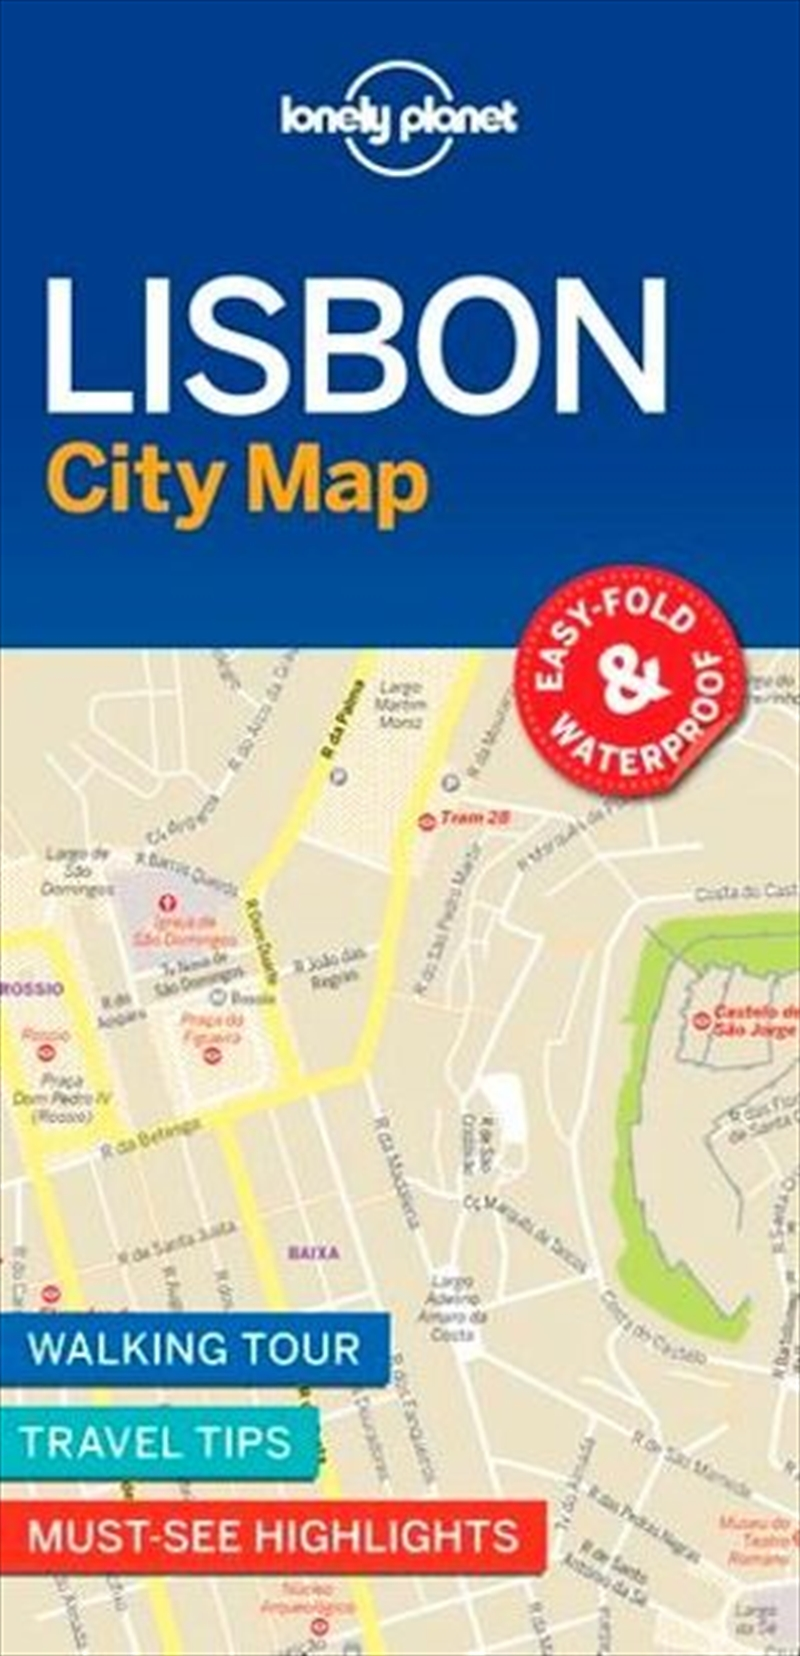 Lonely Planet Travel Guide - Lisbon City Map | Sheet Map